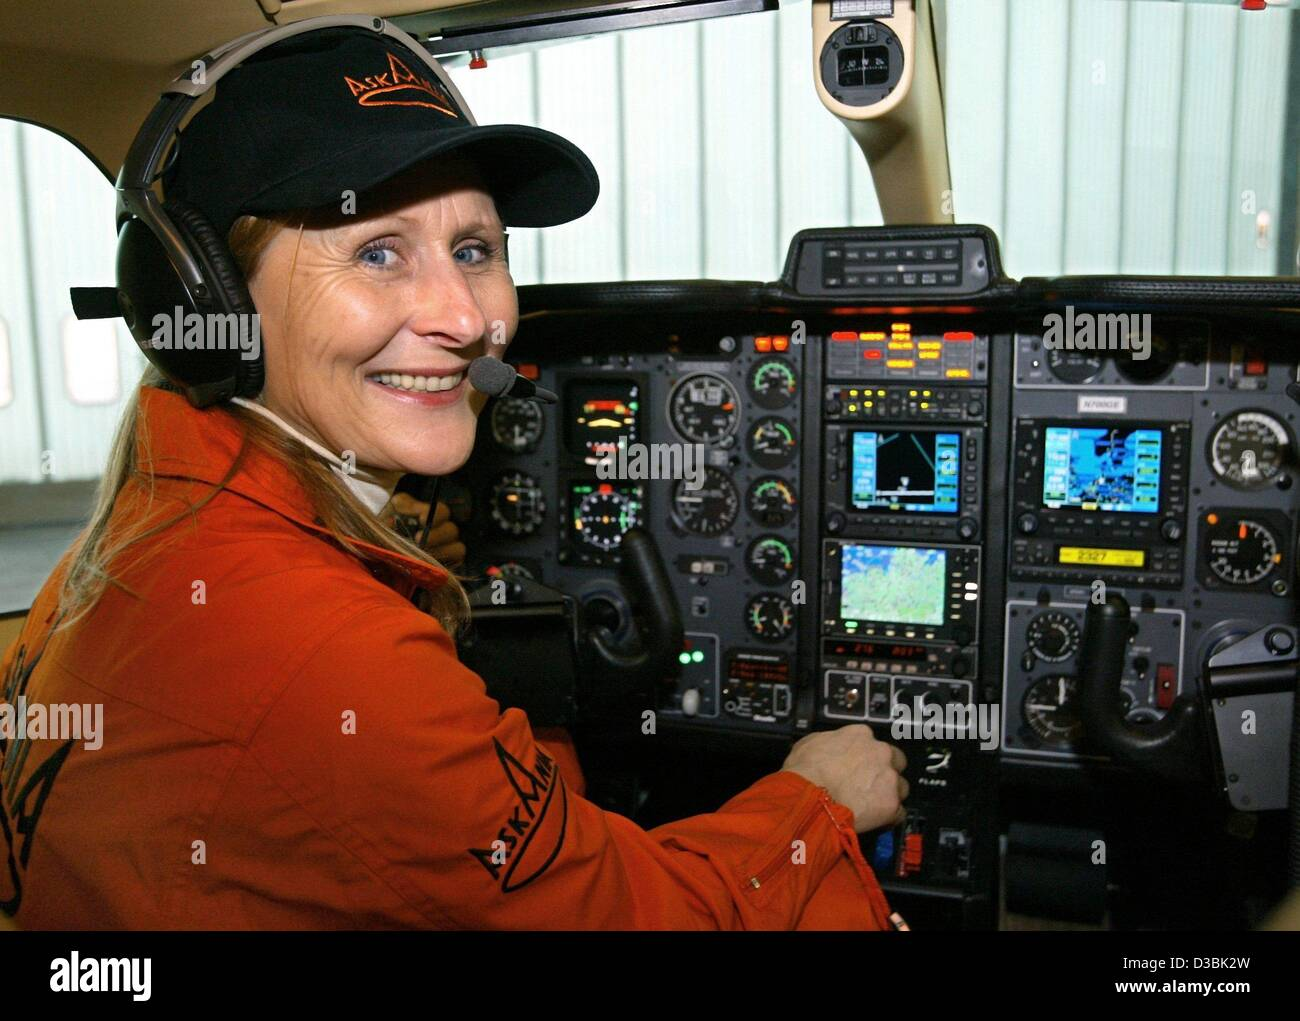 (dpa) - The expert for transatlantic flights, ferry pilot Magret Waltz, sits in the cockpit of a single engine aircraft - Stock Image